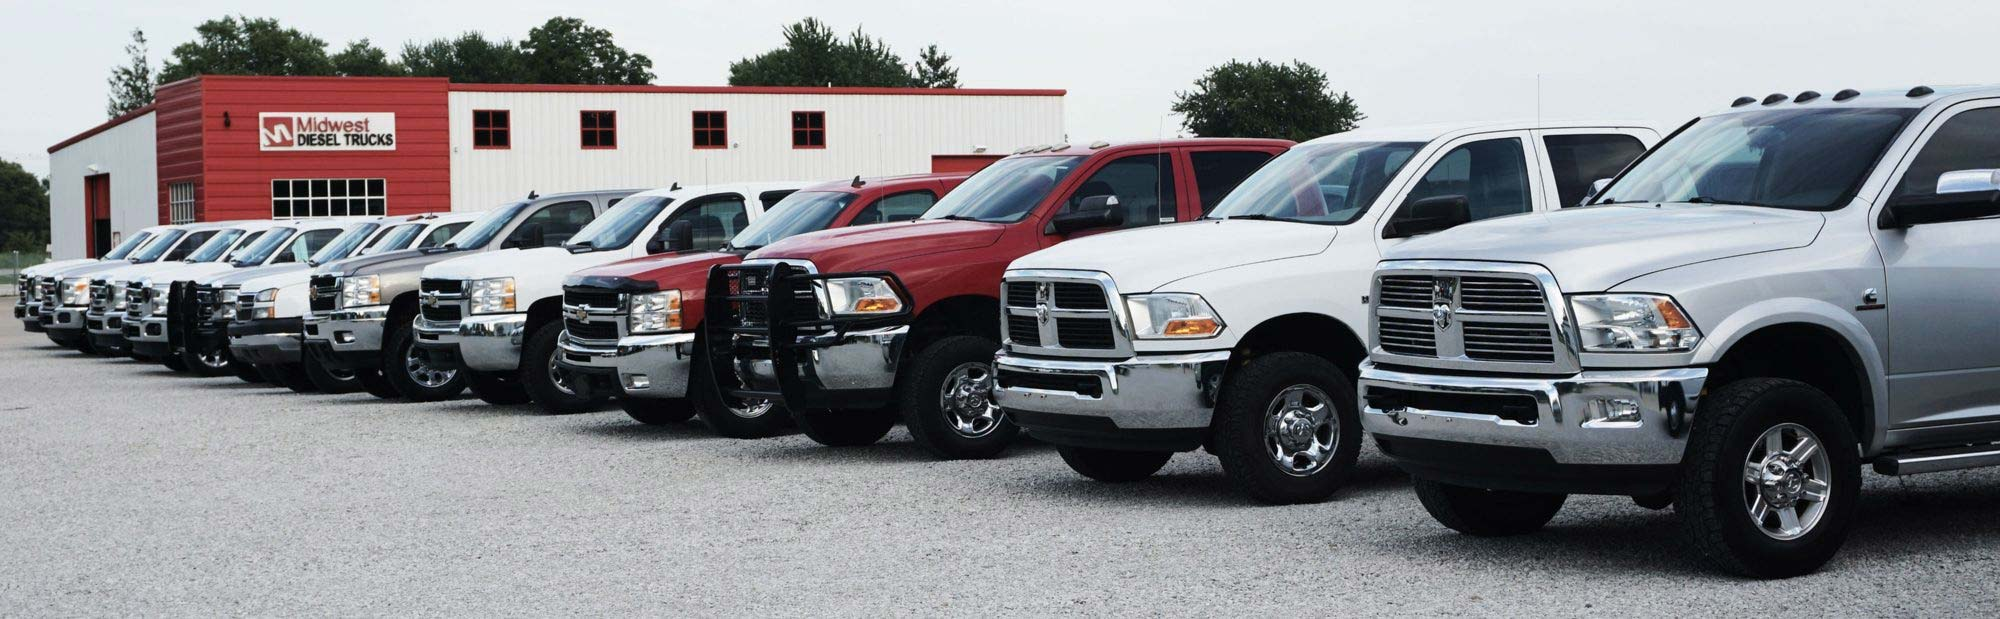 Cheap Diesel Trucks >> High Quality Car Inventory In Decatur Il Midwest Diesel